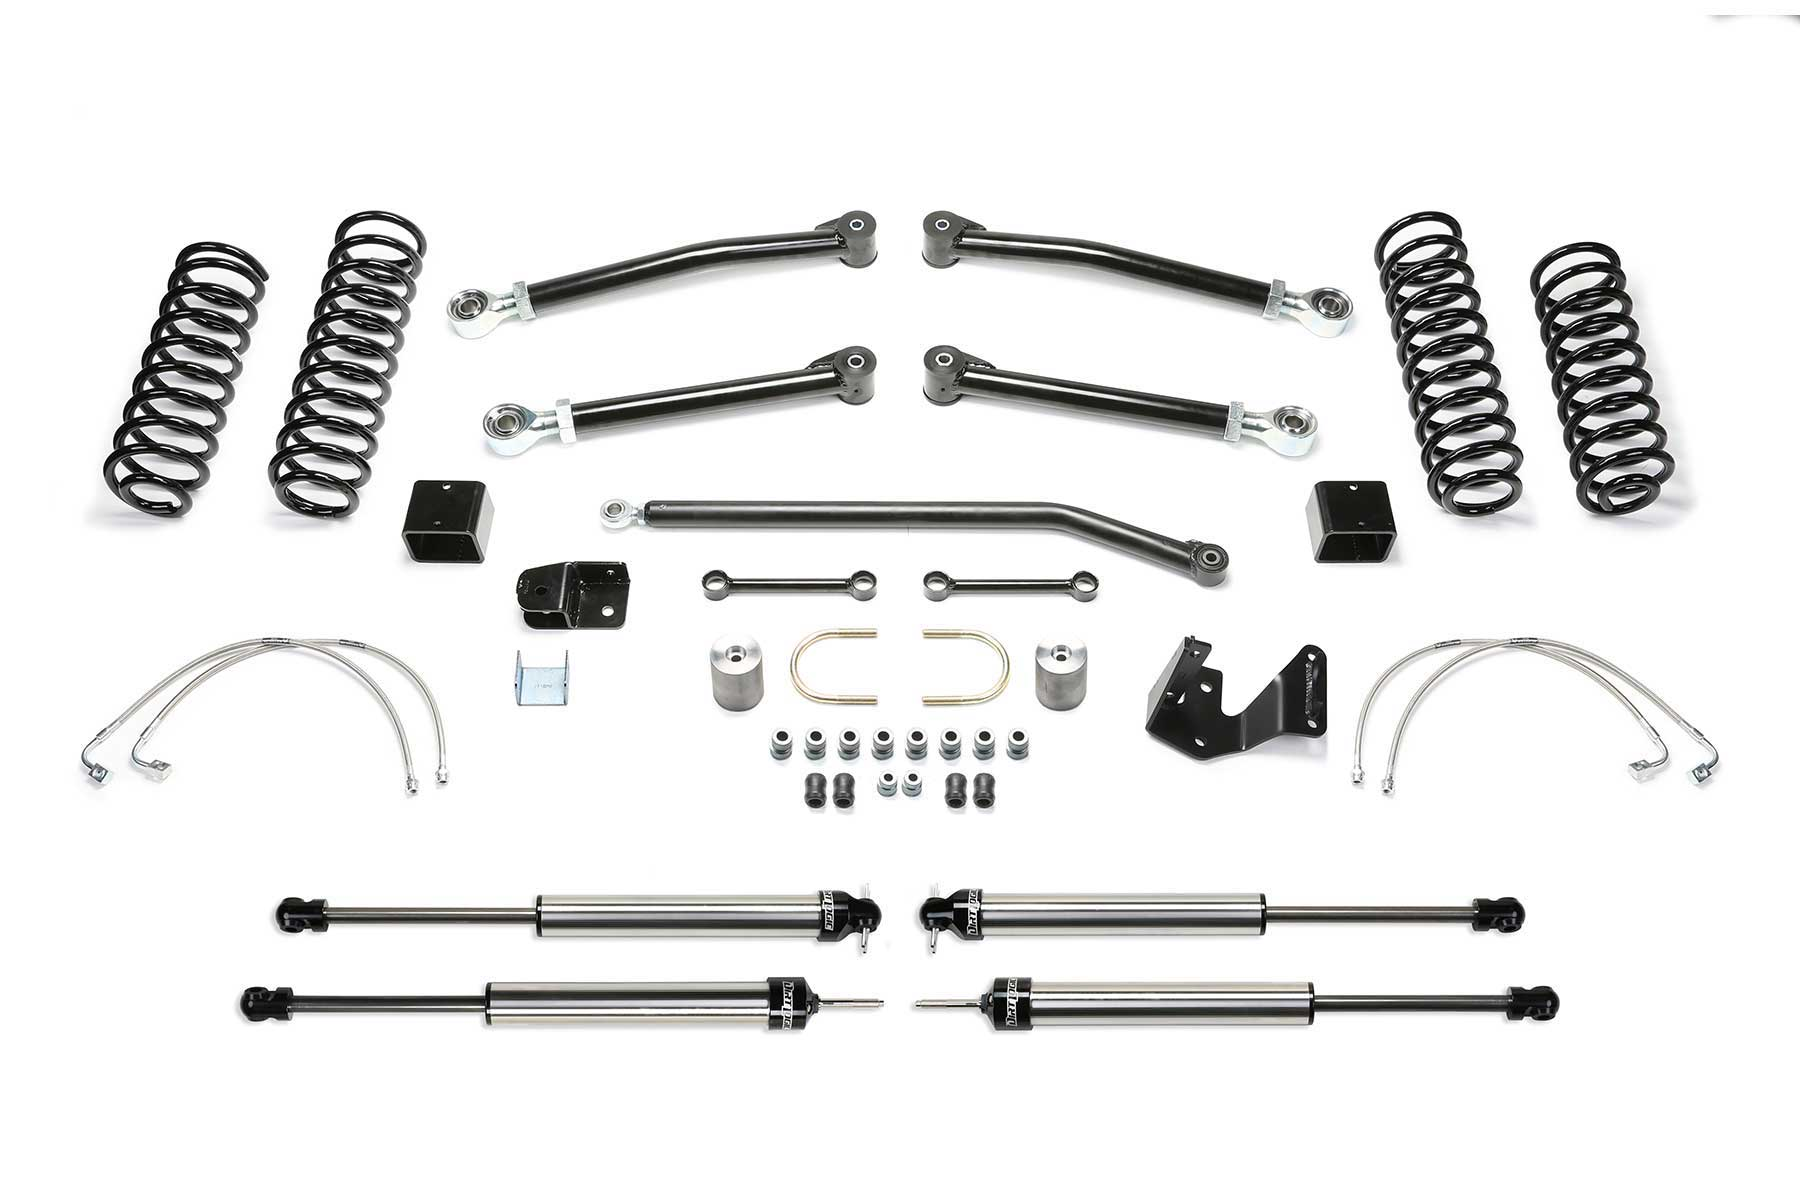 3 Trail Ii System W Dirt Logic 2 25 Shocks